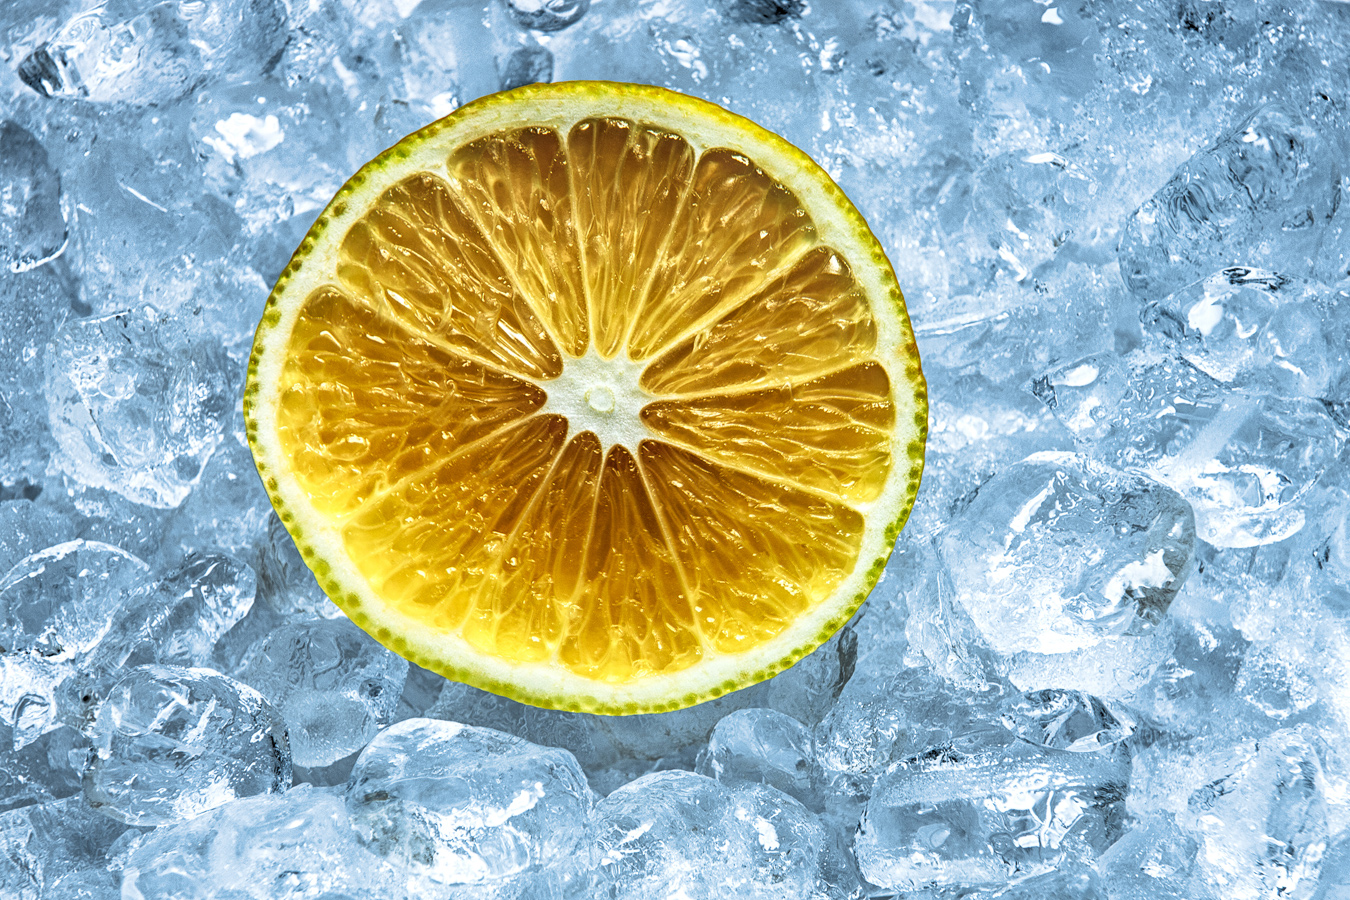 Frozen Lemon (2012)